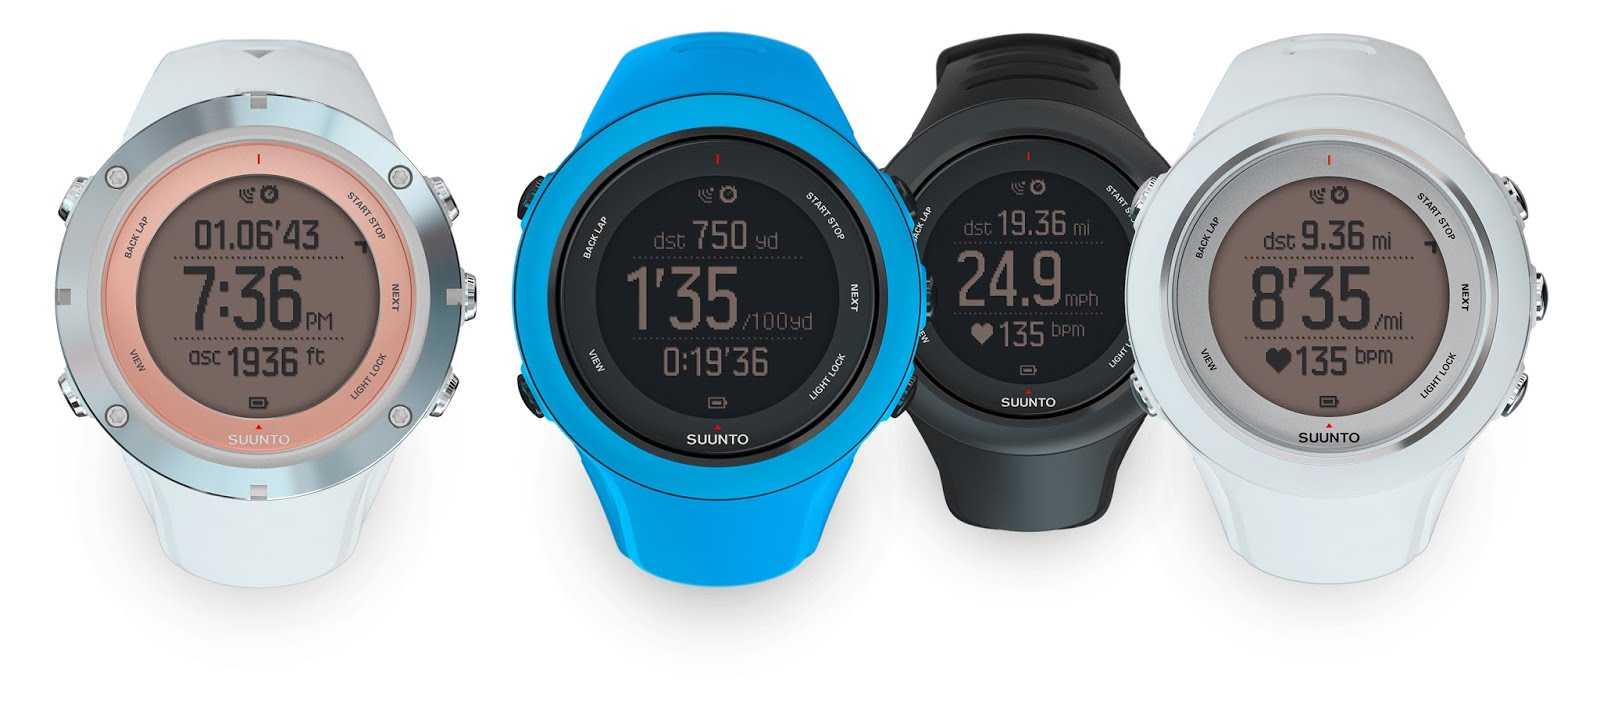 Suunto Watch Syncs With Phone App Makes Movie Of Your Training Ambit3 Sport Black Hr Gps For Multisport Route Gearjunkie